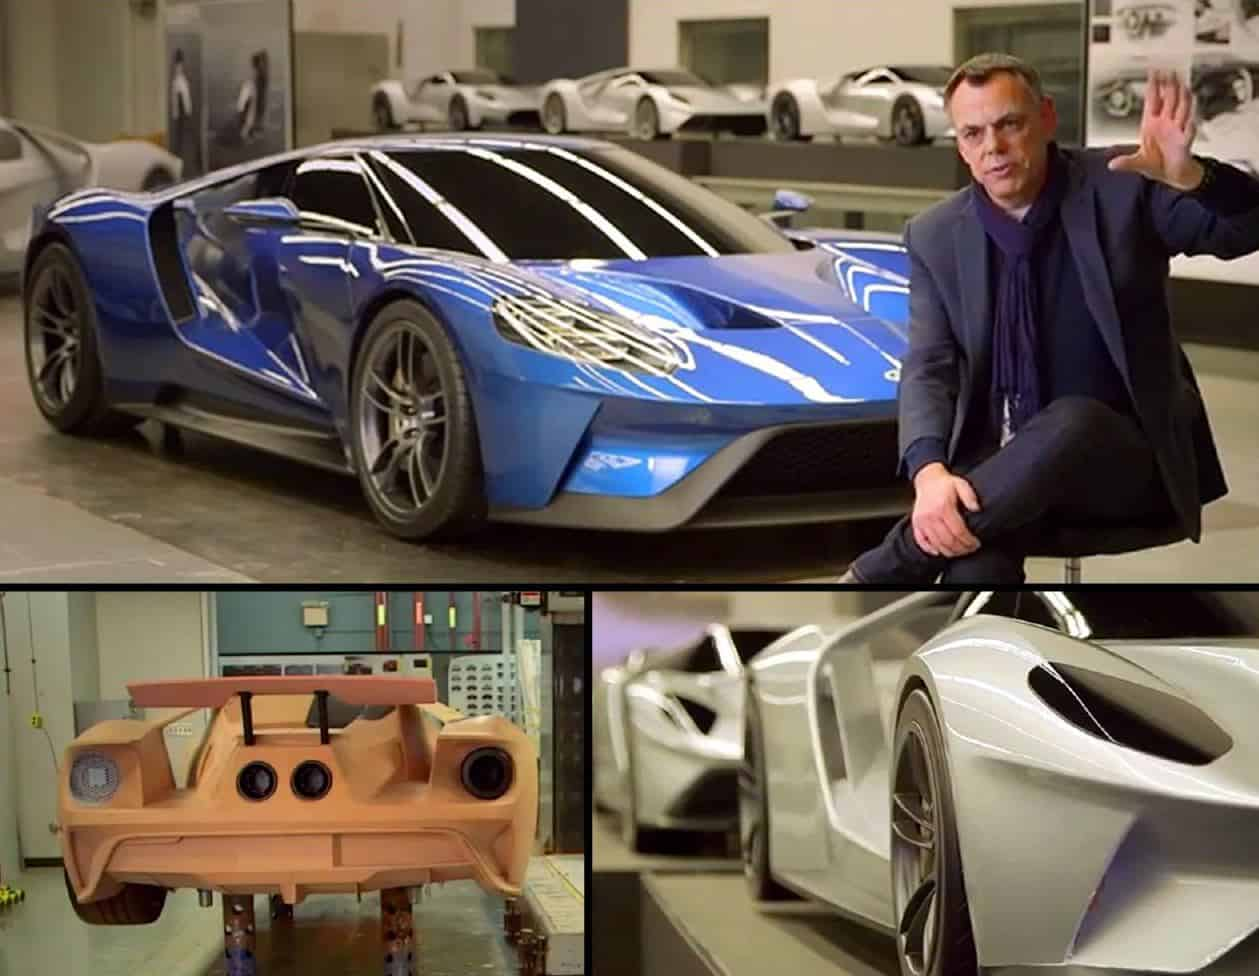 Ford Gt Design Process Outlined In New Video For Forza Motorsport